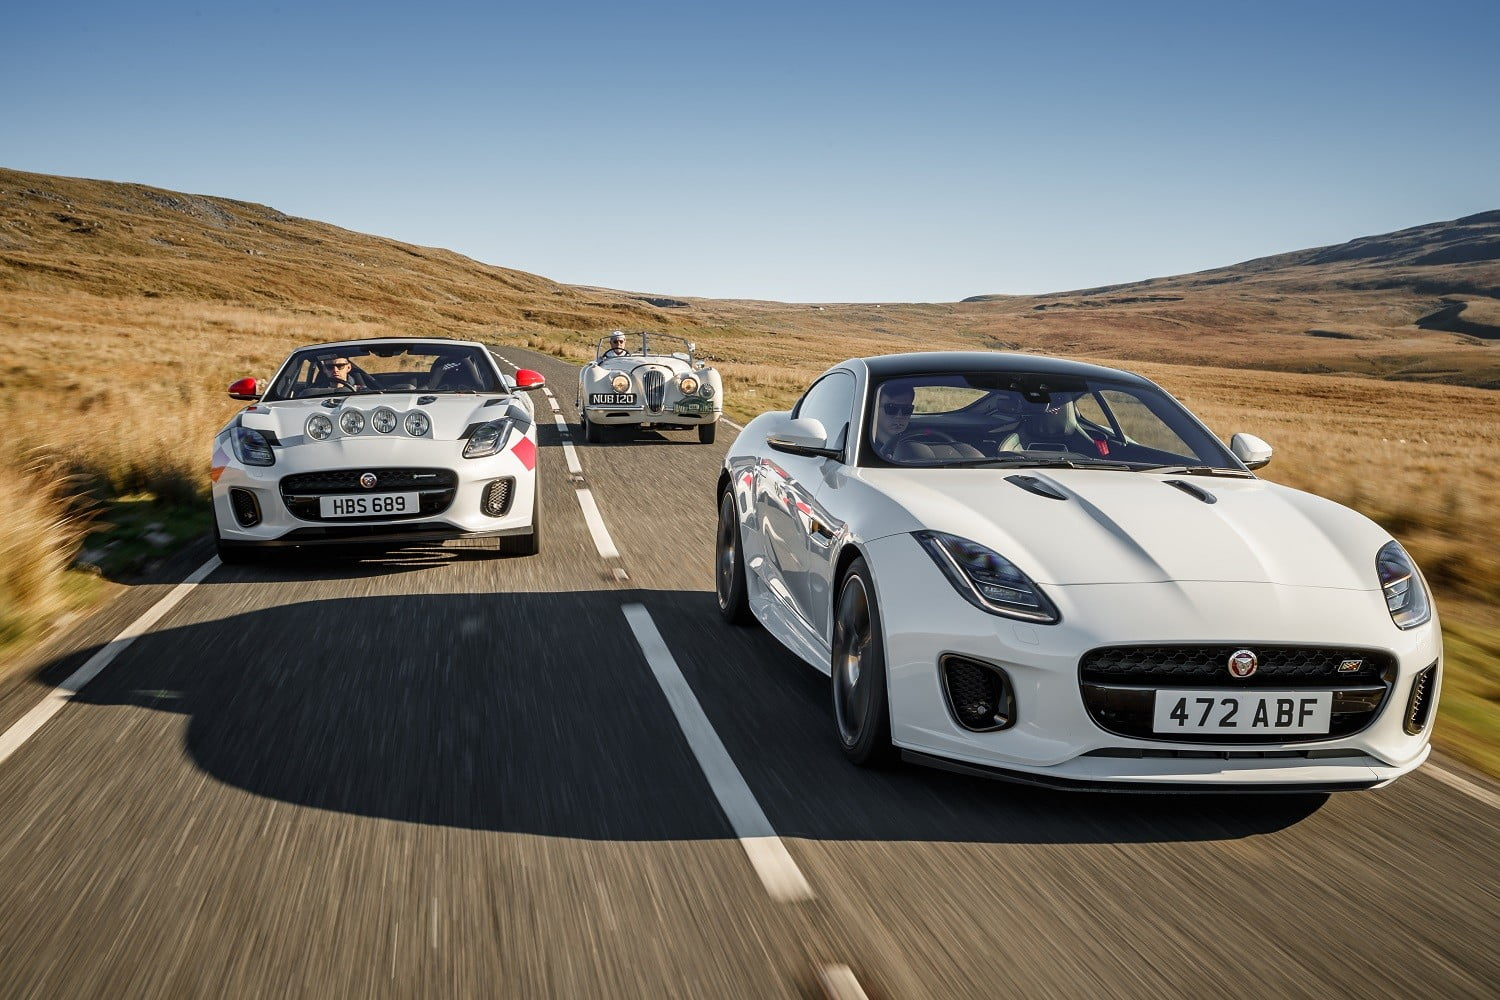 jaguar builds rally ready 2019 f type to turn heads car 3